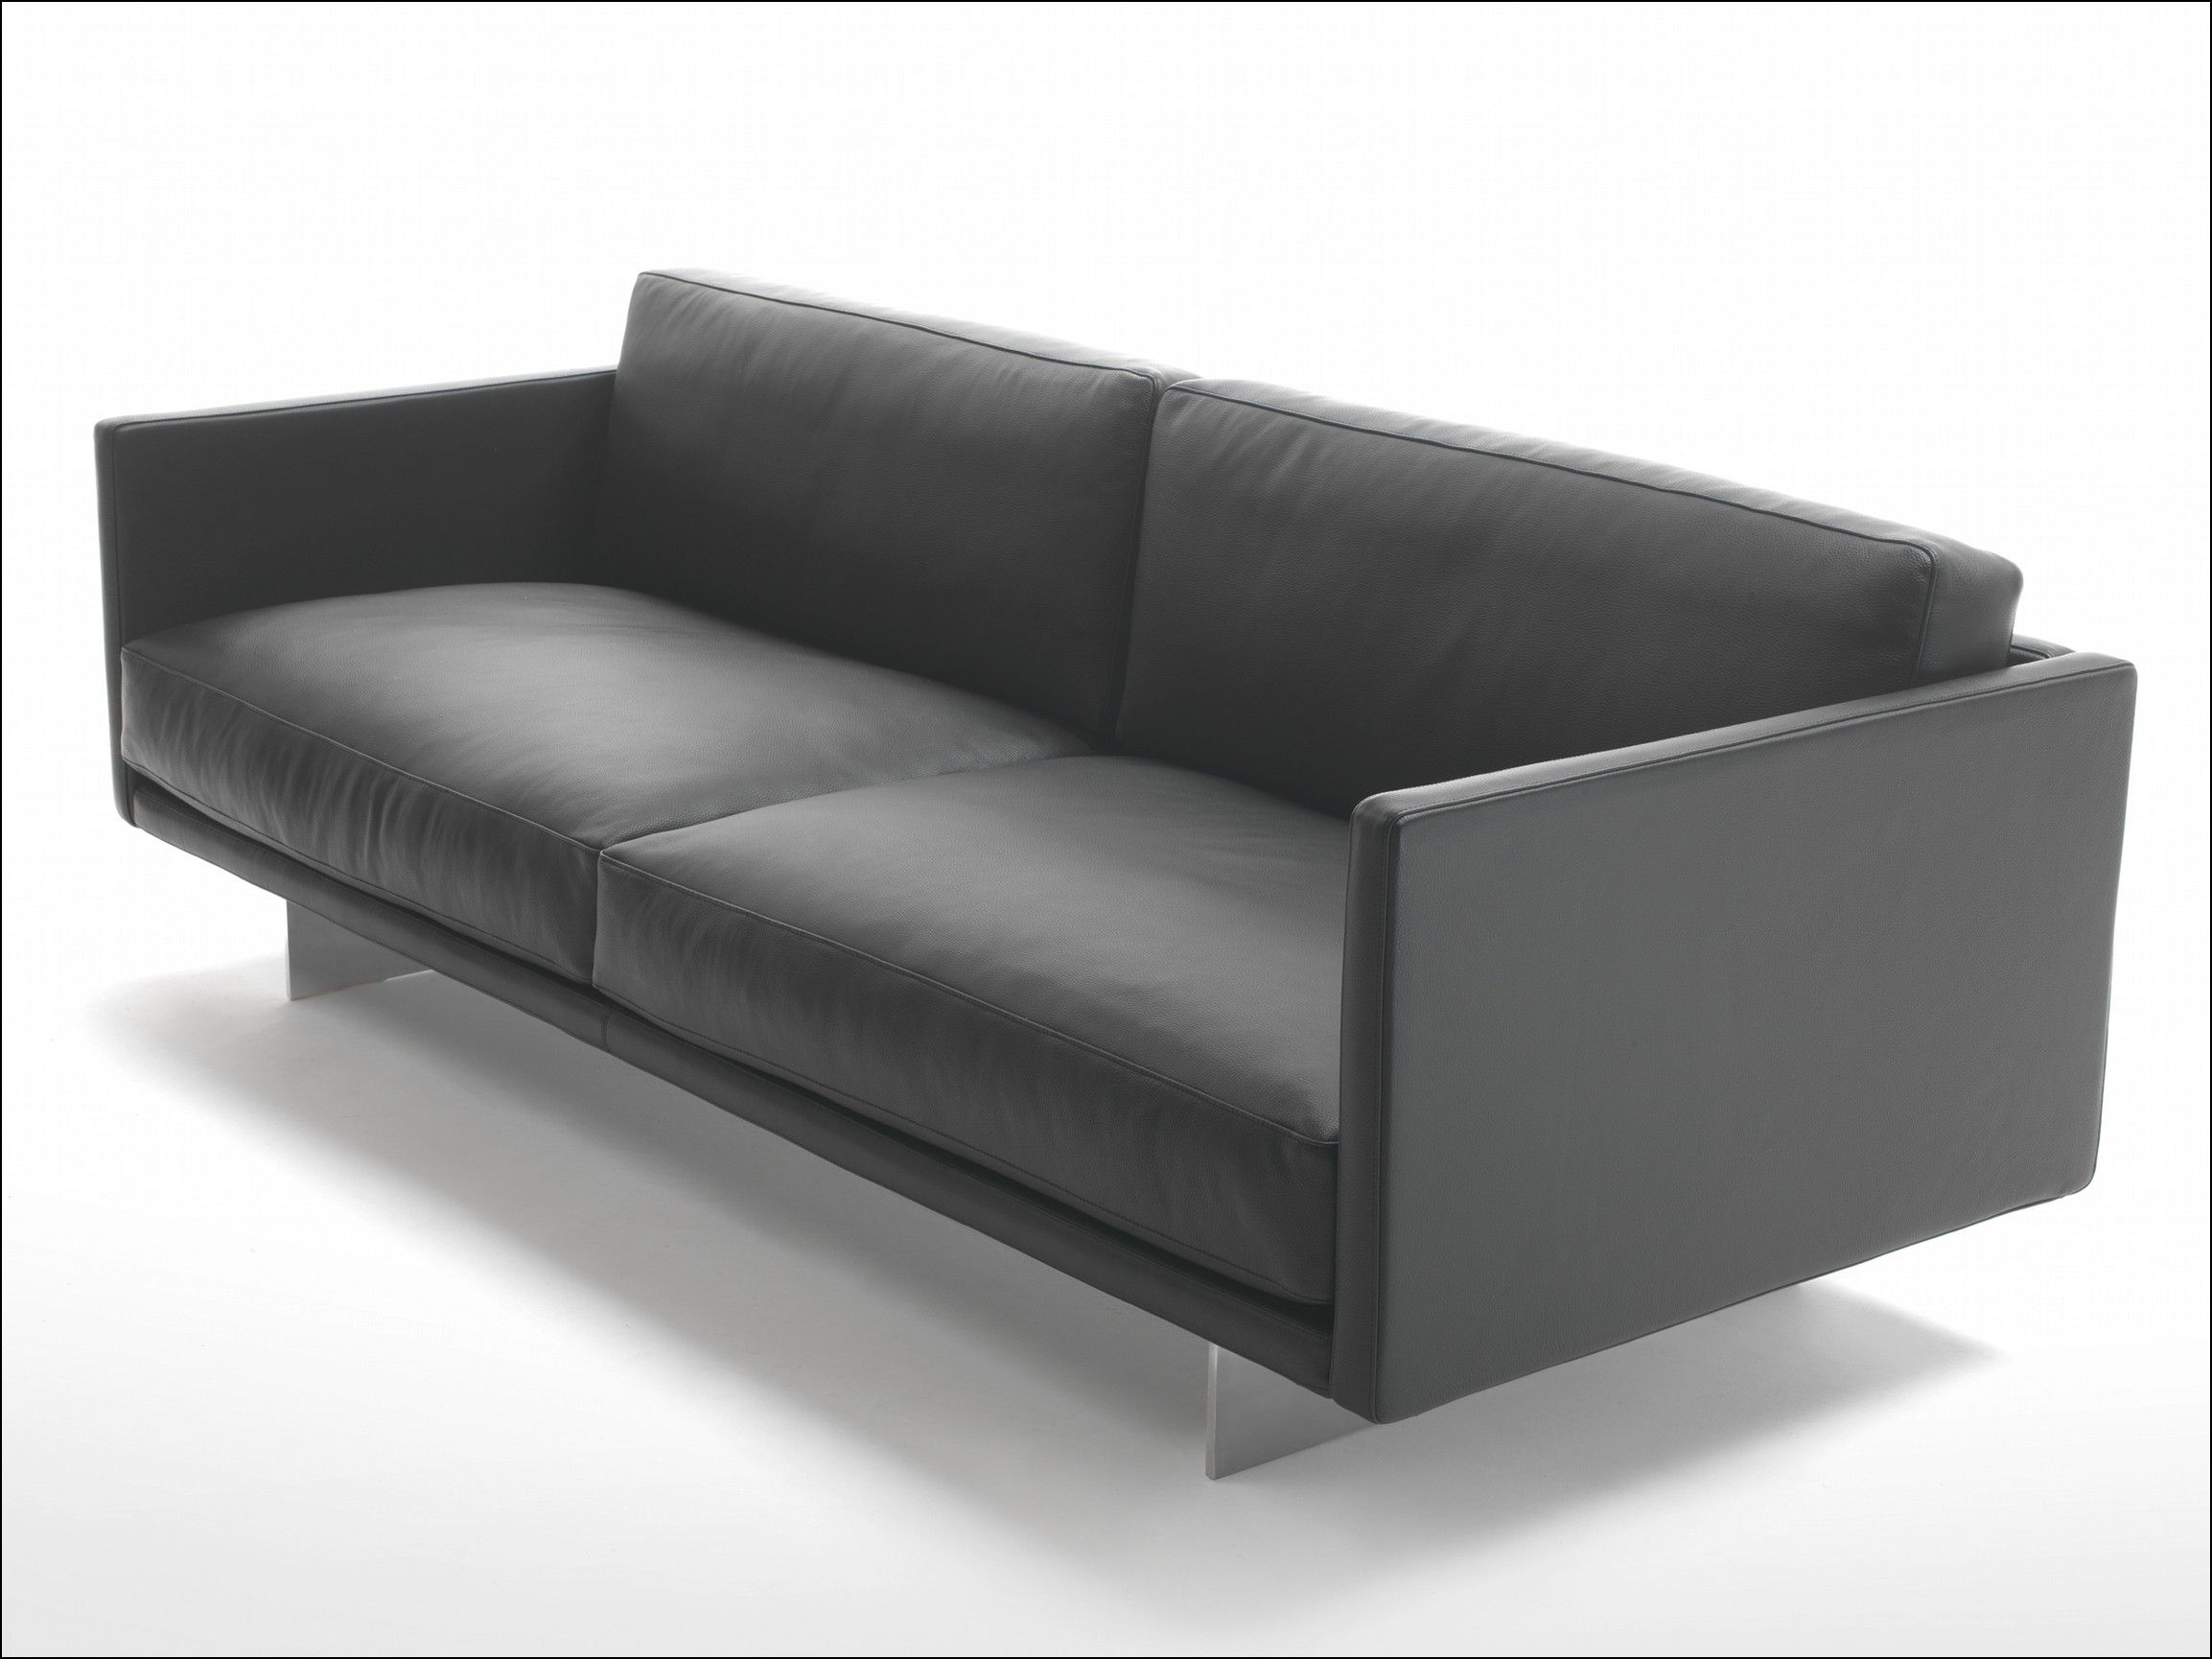 Ikea Office Couch Office Couch Couch Furniture Sofa